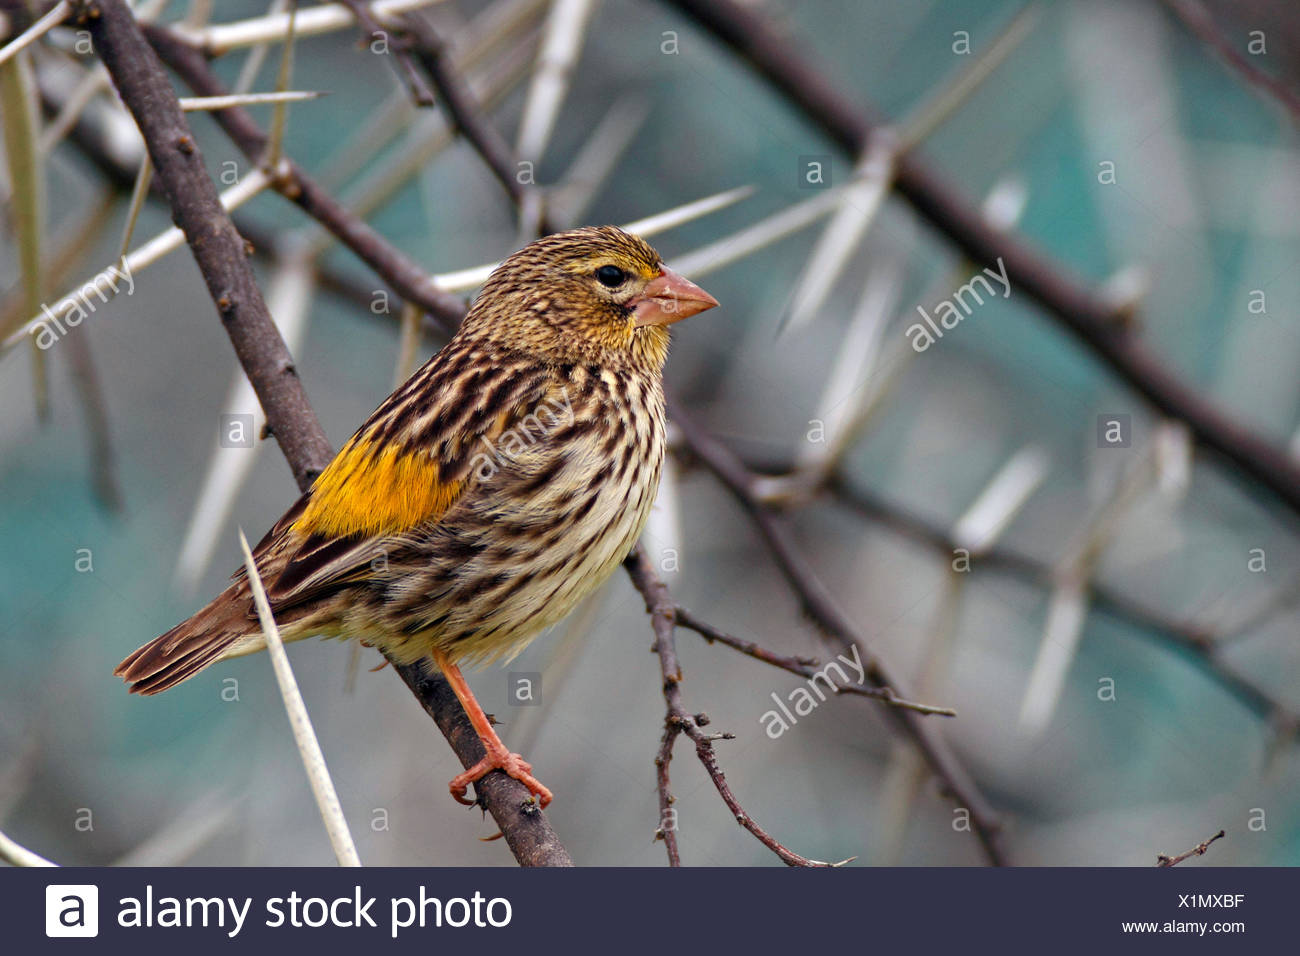 Yellow-rumped bishop (Euplectes capensis), young male sitting in a thorn bush, South Africa, Namaqua National Park - Stock Image